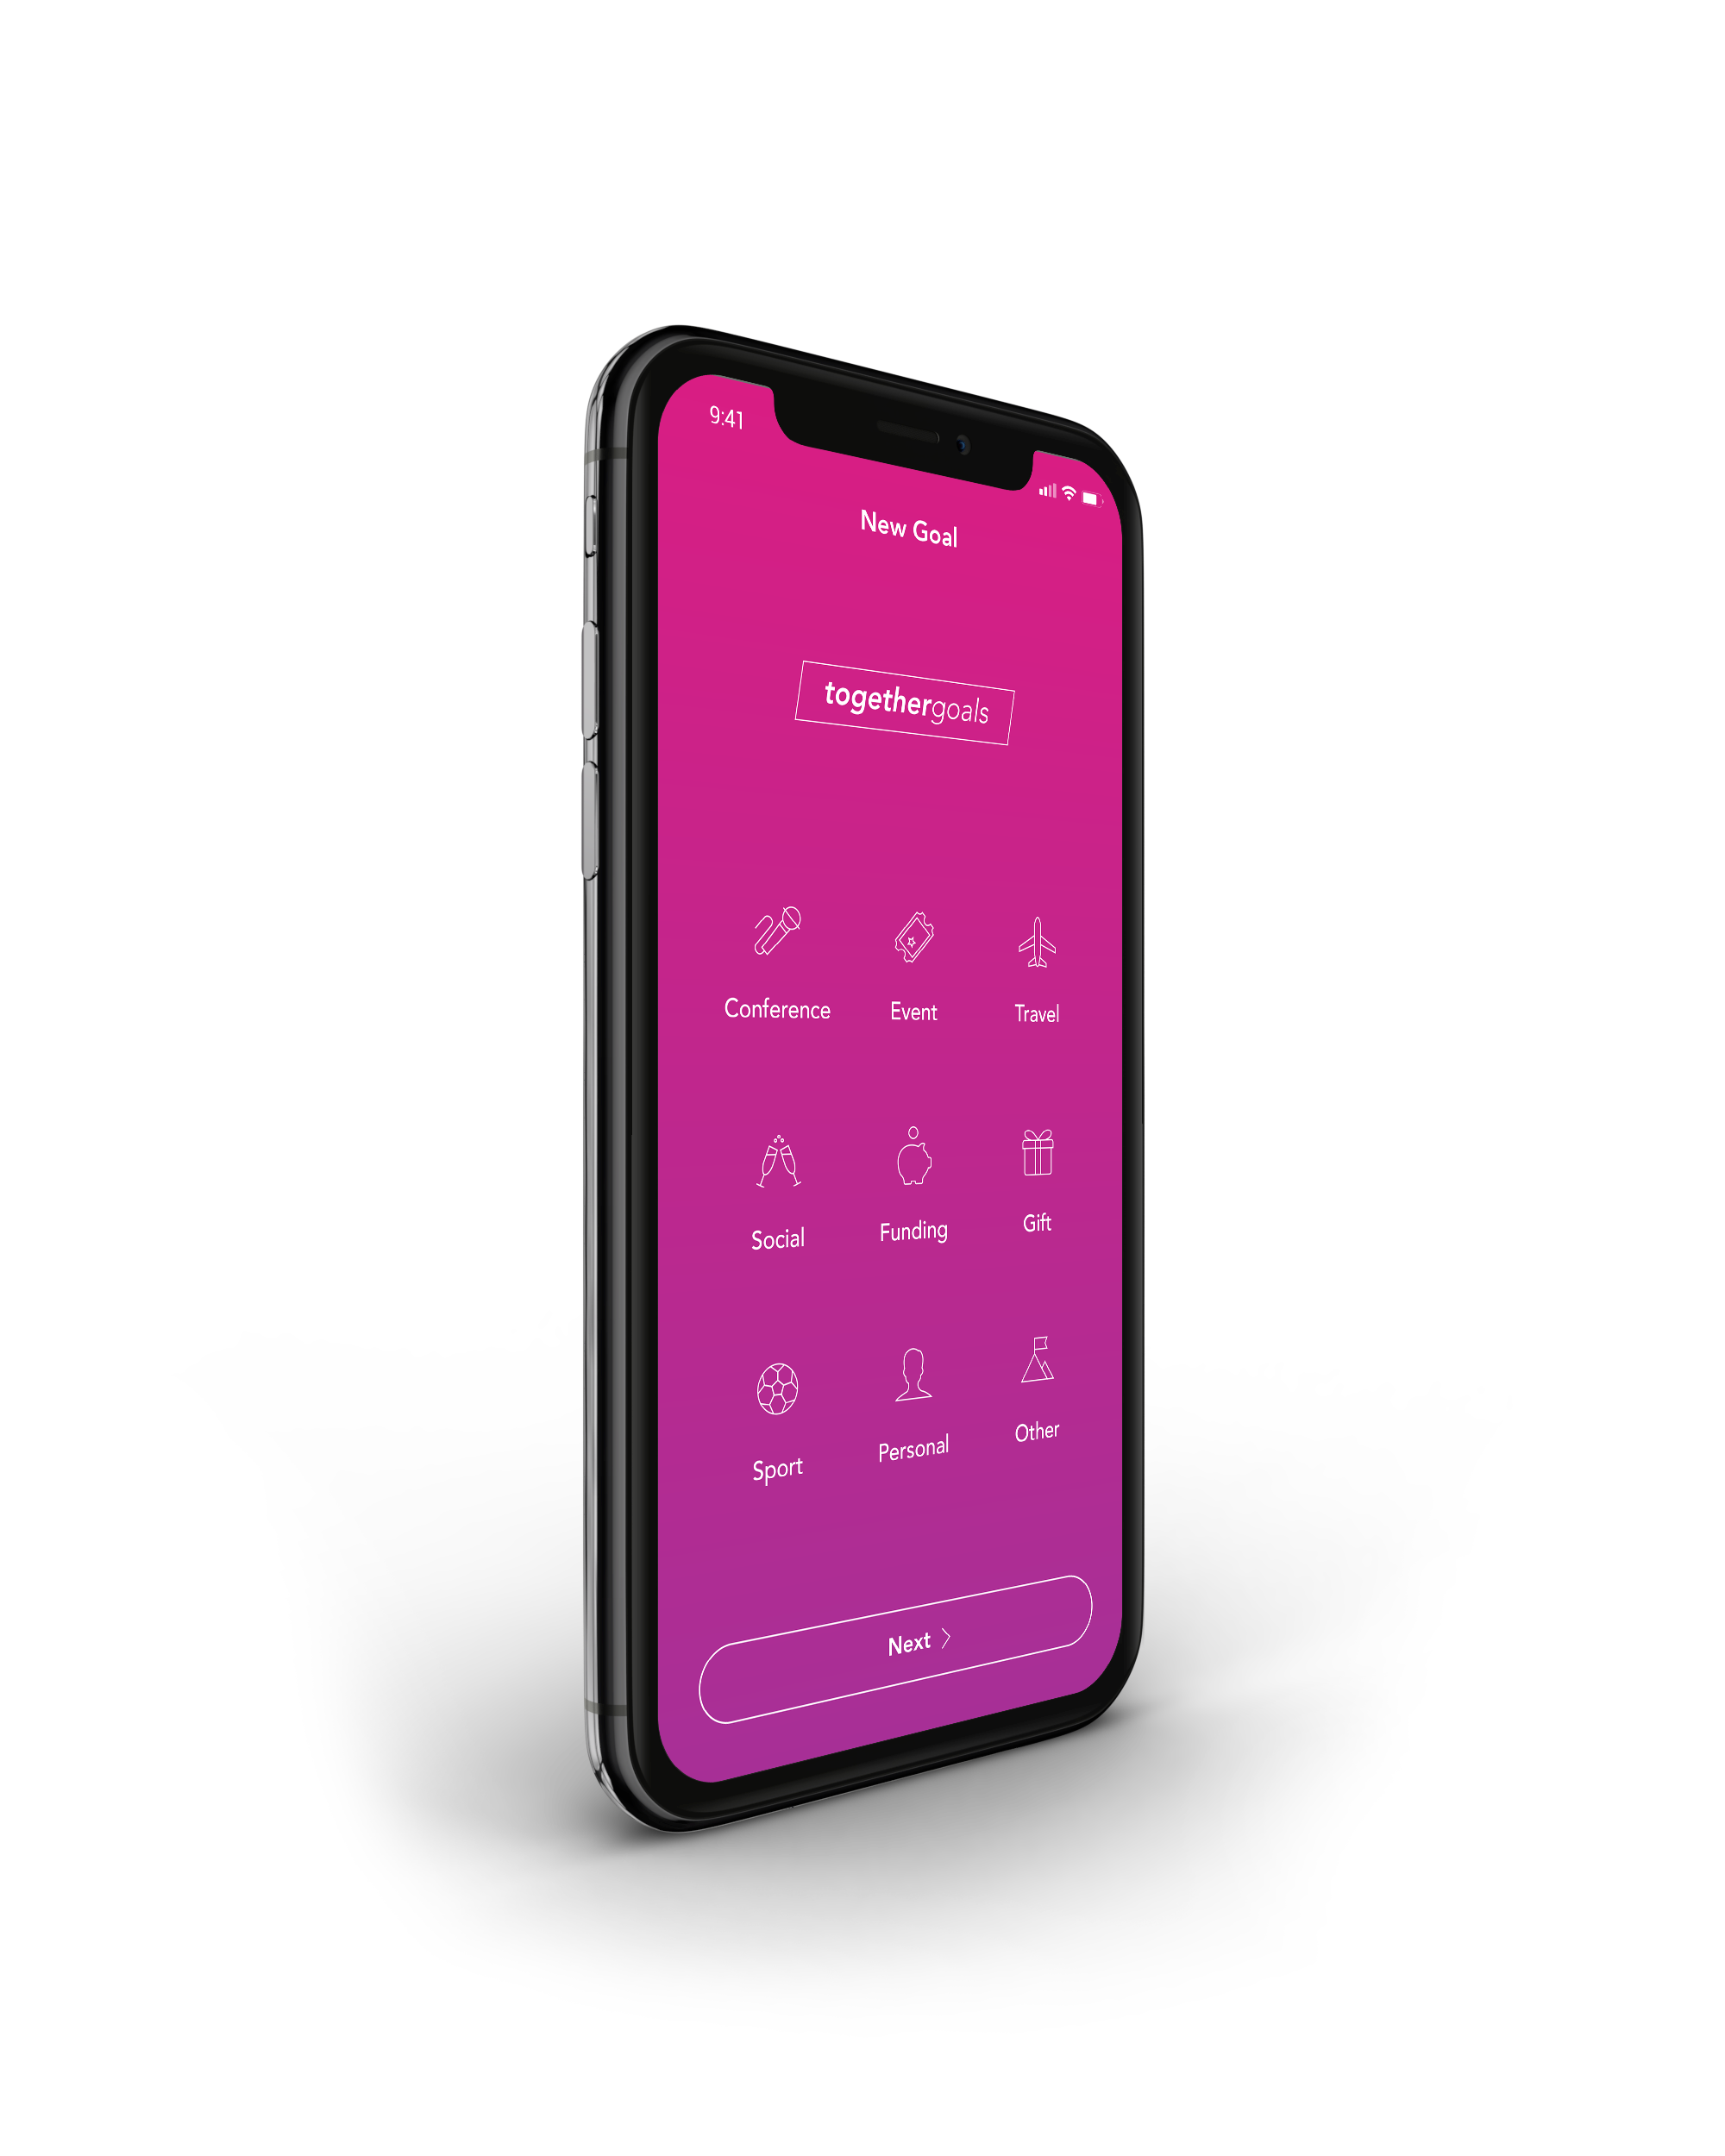 Create Goals - Create multiple public or private goals and keep track of all your upcoming events in one place. From sports tournaments to conferences or travelling with friends - whatever the goal, begin together today.